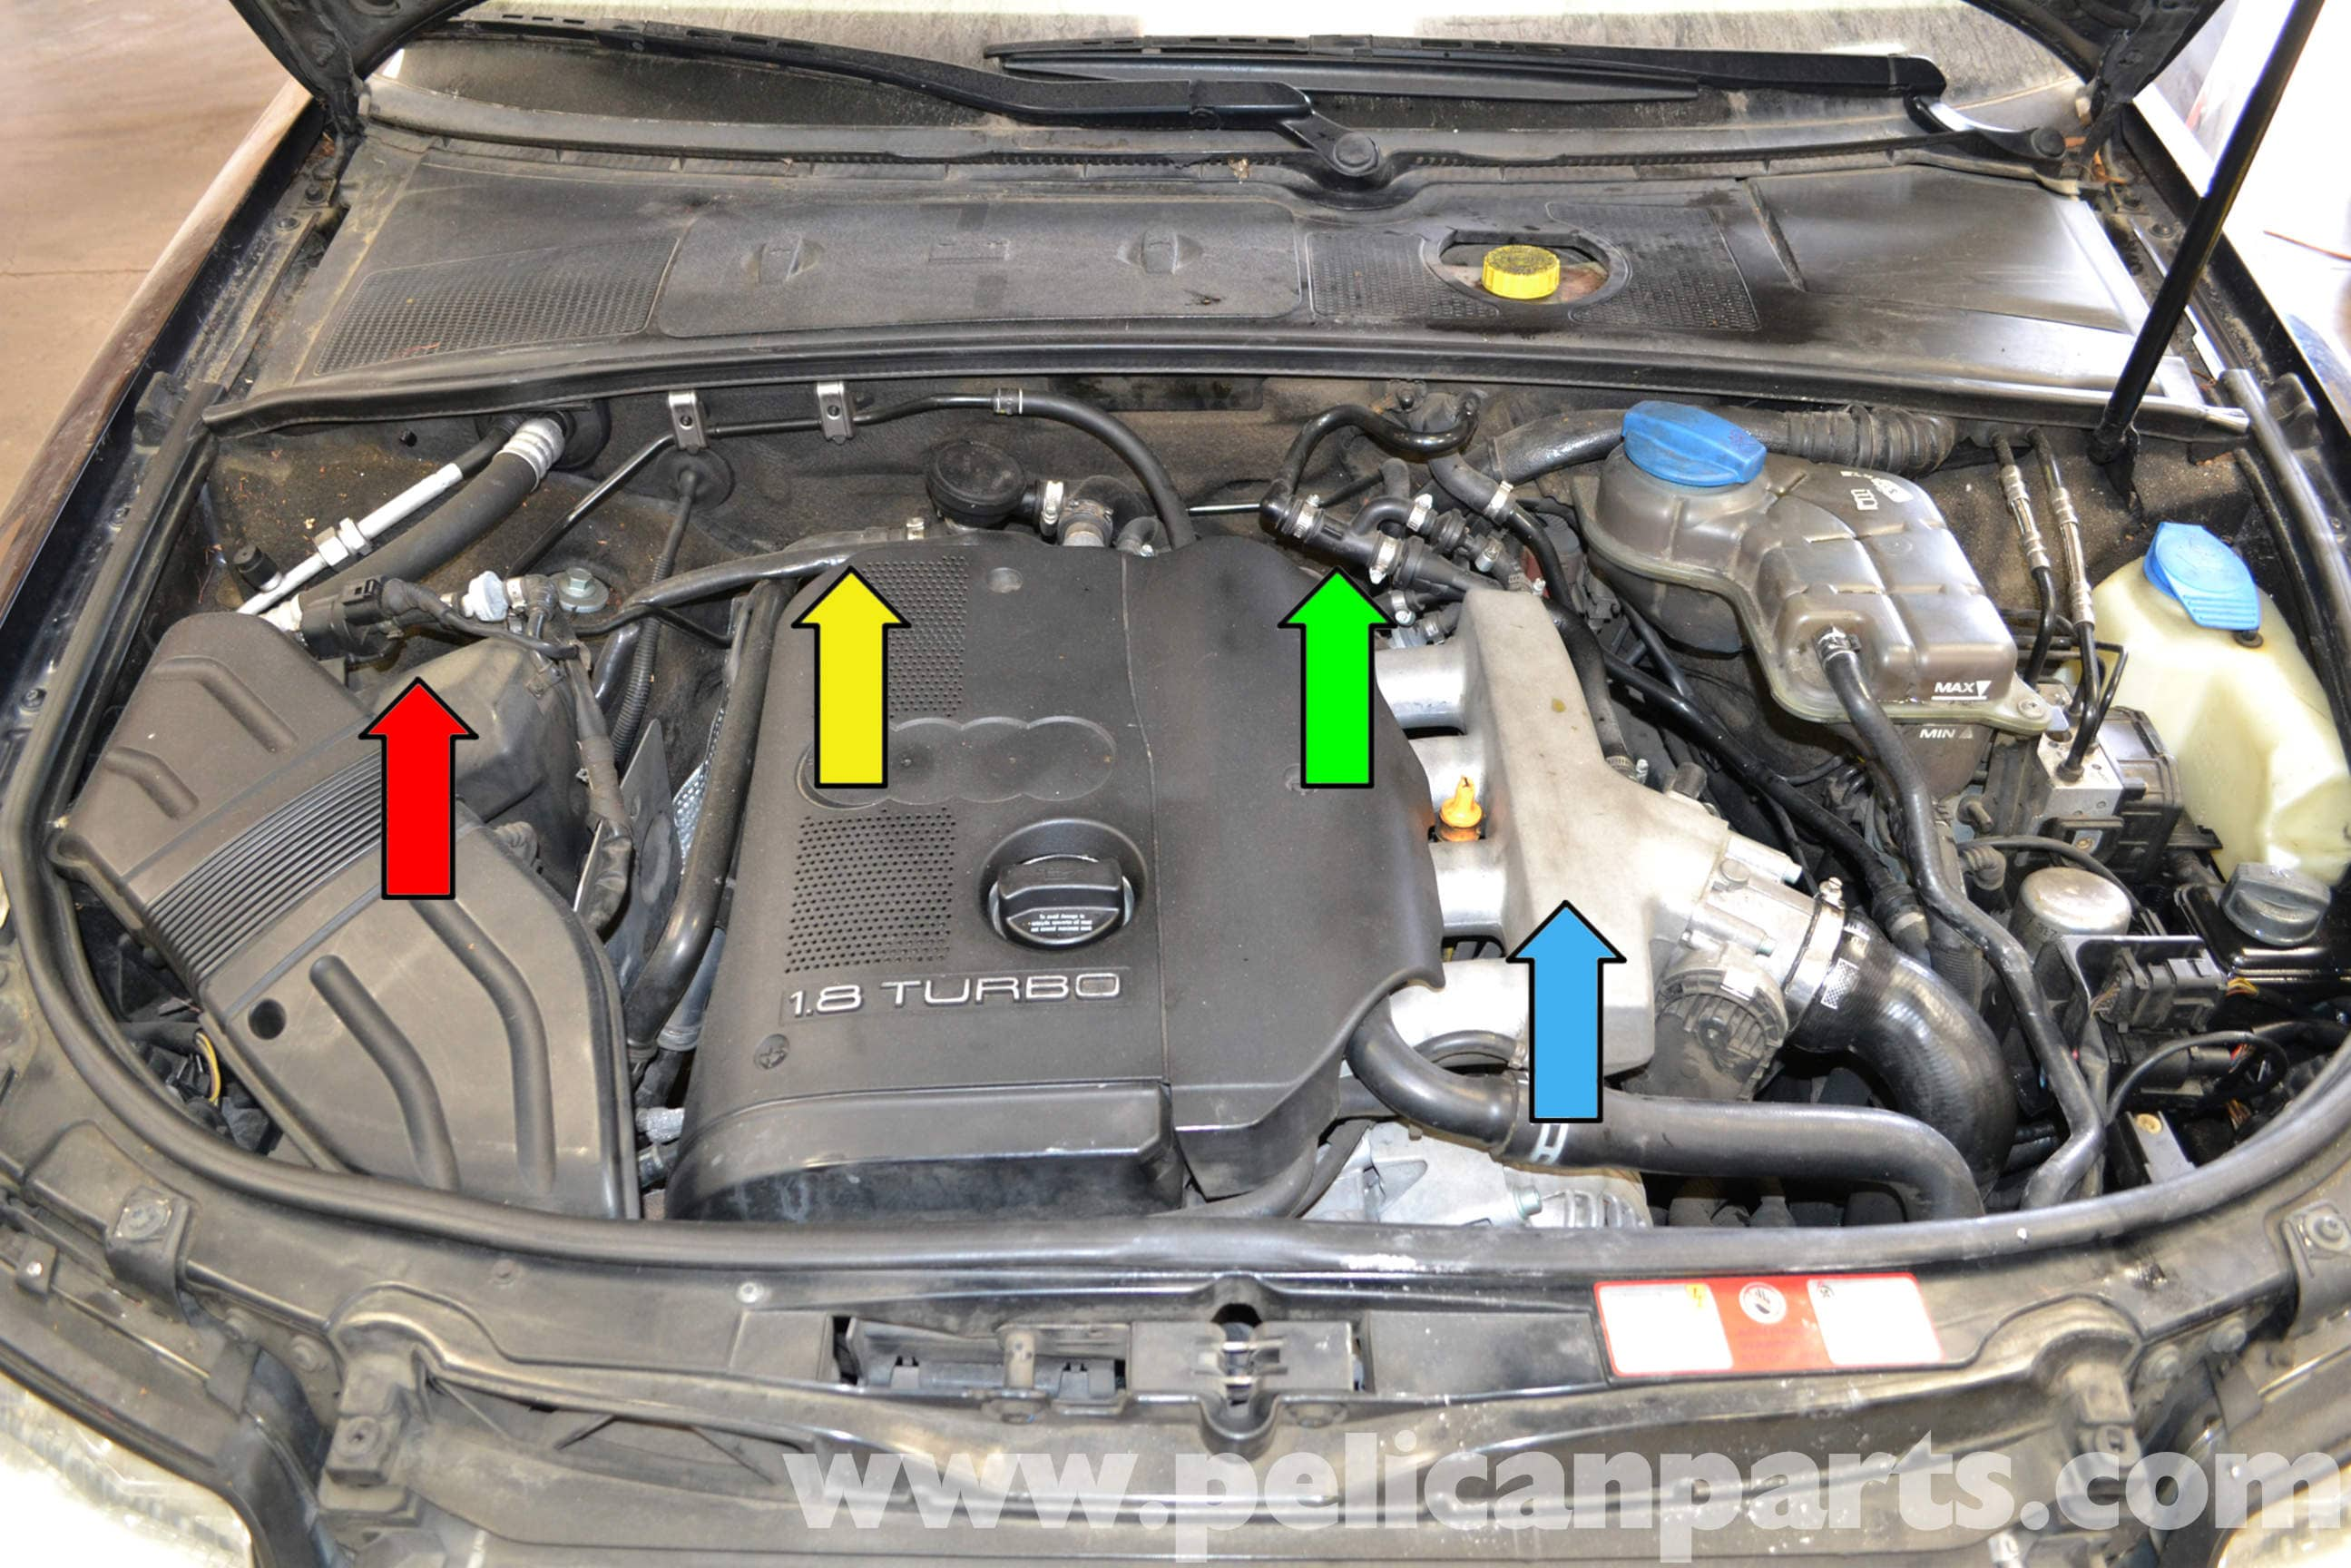 Audi A4 B6 Fixing Common Vacuum Leaks (2002-2008) | Pelican Parts DIY  Maintenance ArticlePelican Parts